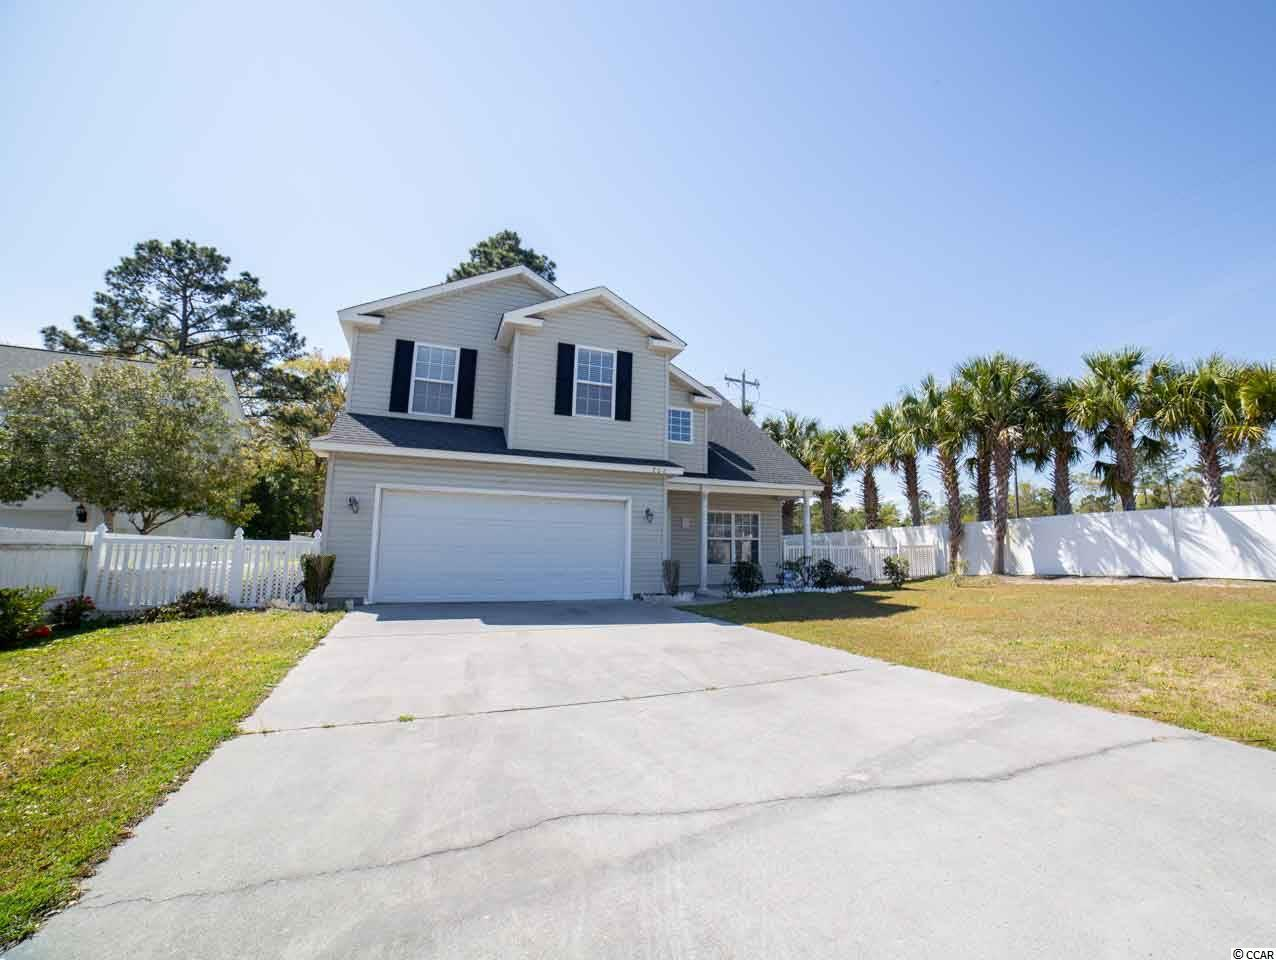 Could it be any more convenient?  Move in ready and in a fabulous location near the MarshWalk in the Inlet! An easy flow plan on the ground floor with large kitchen that features granite countertops, lots of cabinet space an upgraded appliance package and granite countertops.  The family room and dining areas are ample and open to one another and spilling out to the fenced backyard through a sliding glass door that allows for natural light. All of the bedrooms are on the second floor of the home with the master featuring an enormous walk-in closet with attic storage beyond.  The master bath has double sinks, a garden tub and a shower. The guest rooms are all nicely sized with closets that will allow for you to keep everything in order.  Let's get you moved right ... it will be an easy move to 206 Chesapeake Lane.